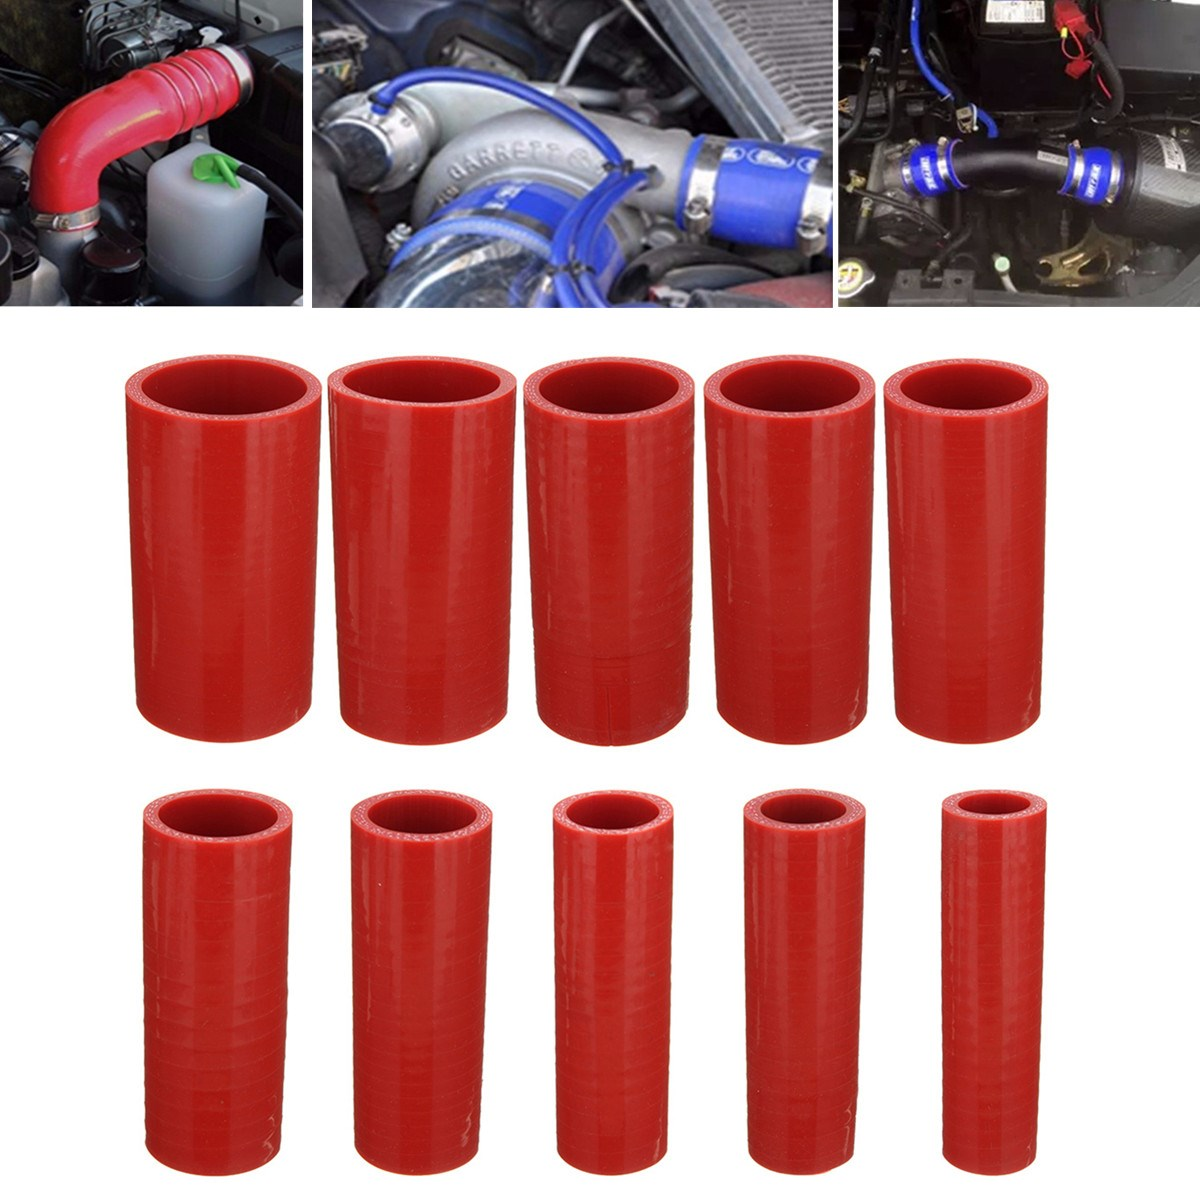 100mm Red Straight Silicone Hose Coupling Connector Silicon Rubber Tube Joiner Pipe Ash